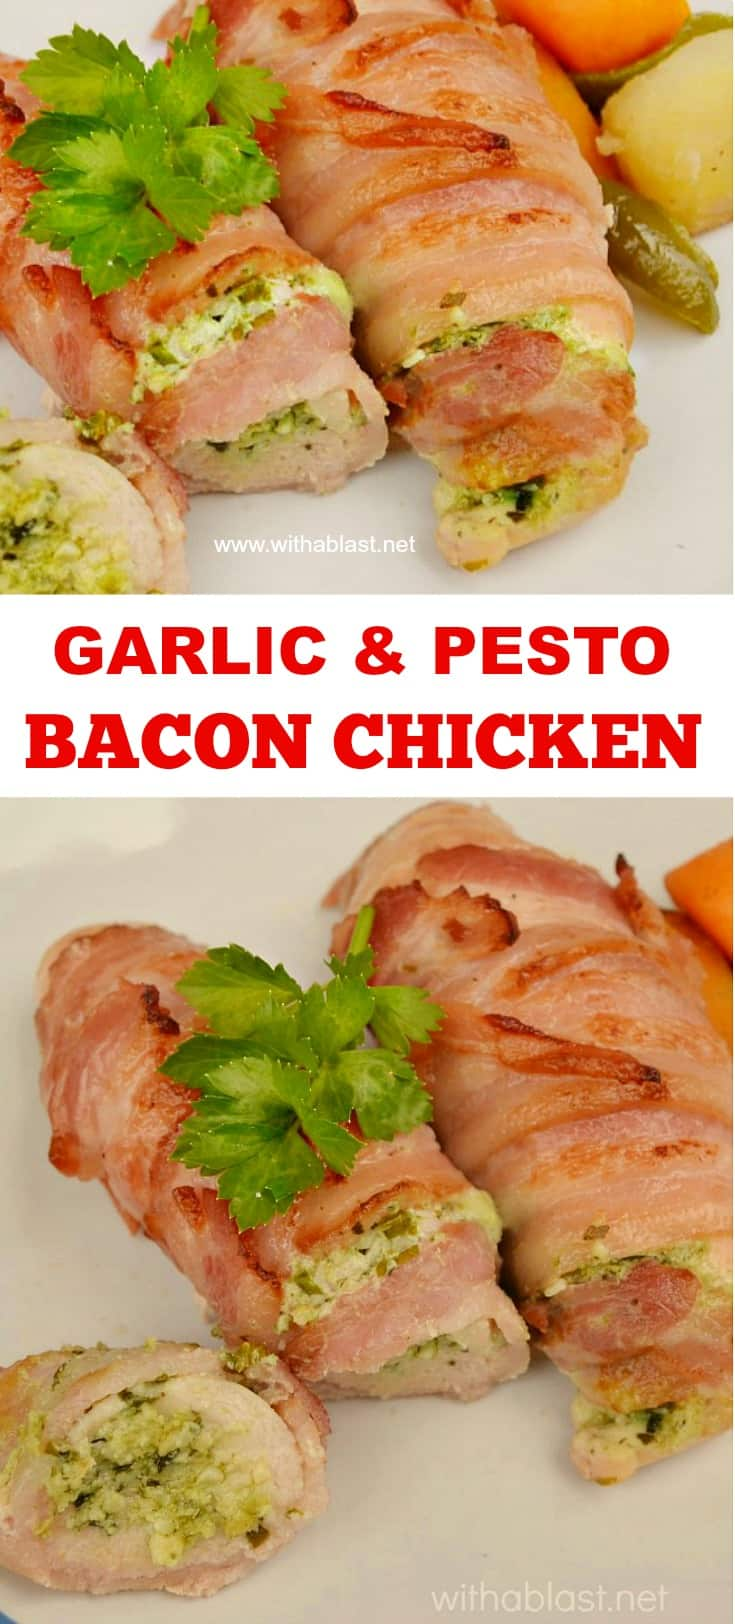 Garlic and Pesto Bacon Chicken is tender, juicy and deliciously cream cheese filled - all wrapped in bacon to make the Chicken extra special #ChickenRecipes #StuffedChicken #PestoChicken #BaconWrappedChicken